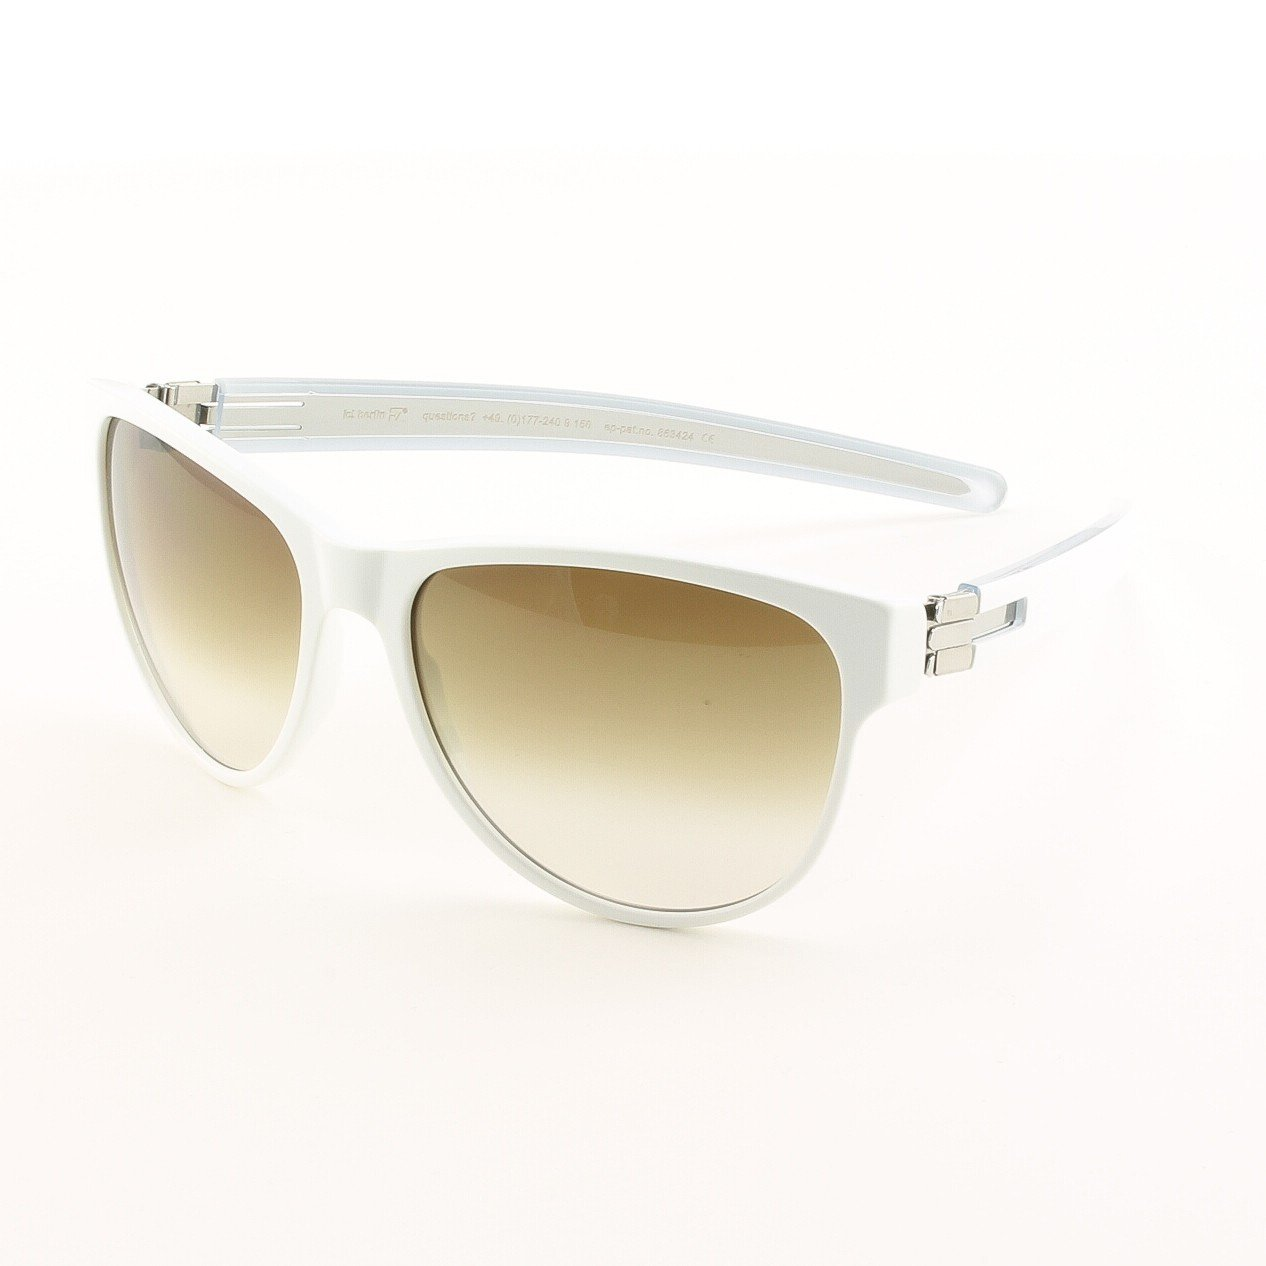 ic! Berlin Dr. Ihab Sunglasses Col. White / Chrome with Brown Gradient Lenses